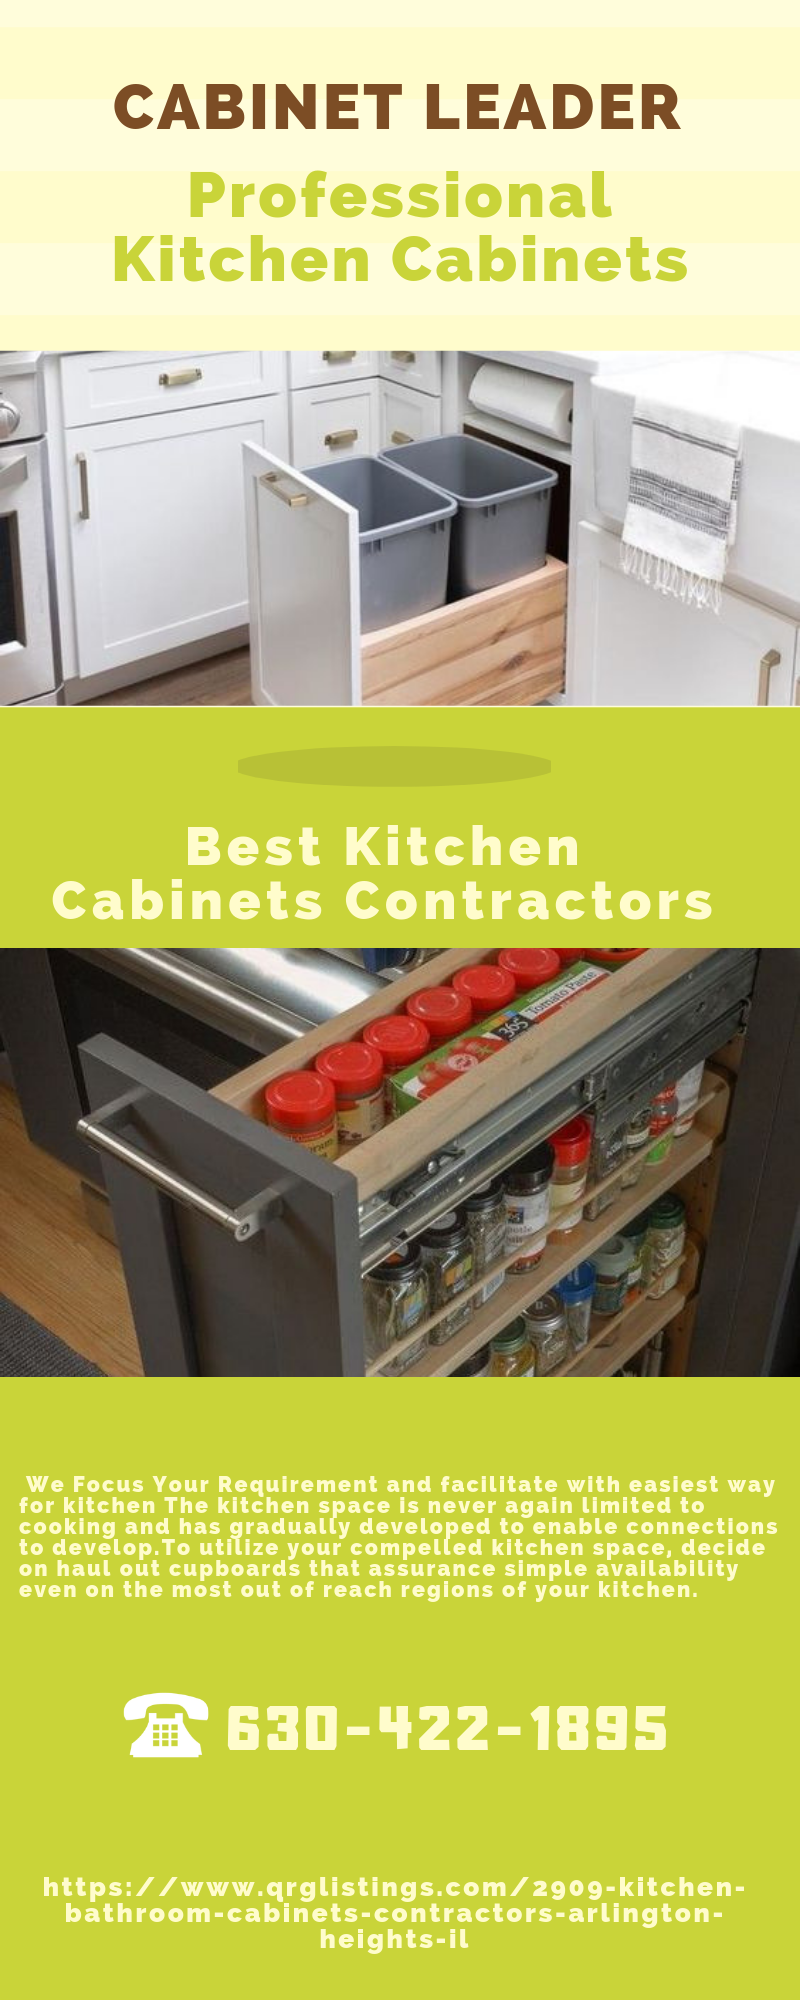 Professional Kitchen Cabinets Contractors Arlington Heights Il Affordable Kitchen Cabinets Kitchen Cabinets For Sale Kitchen Cabinets In Bathroom